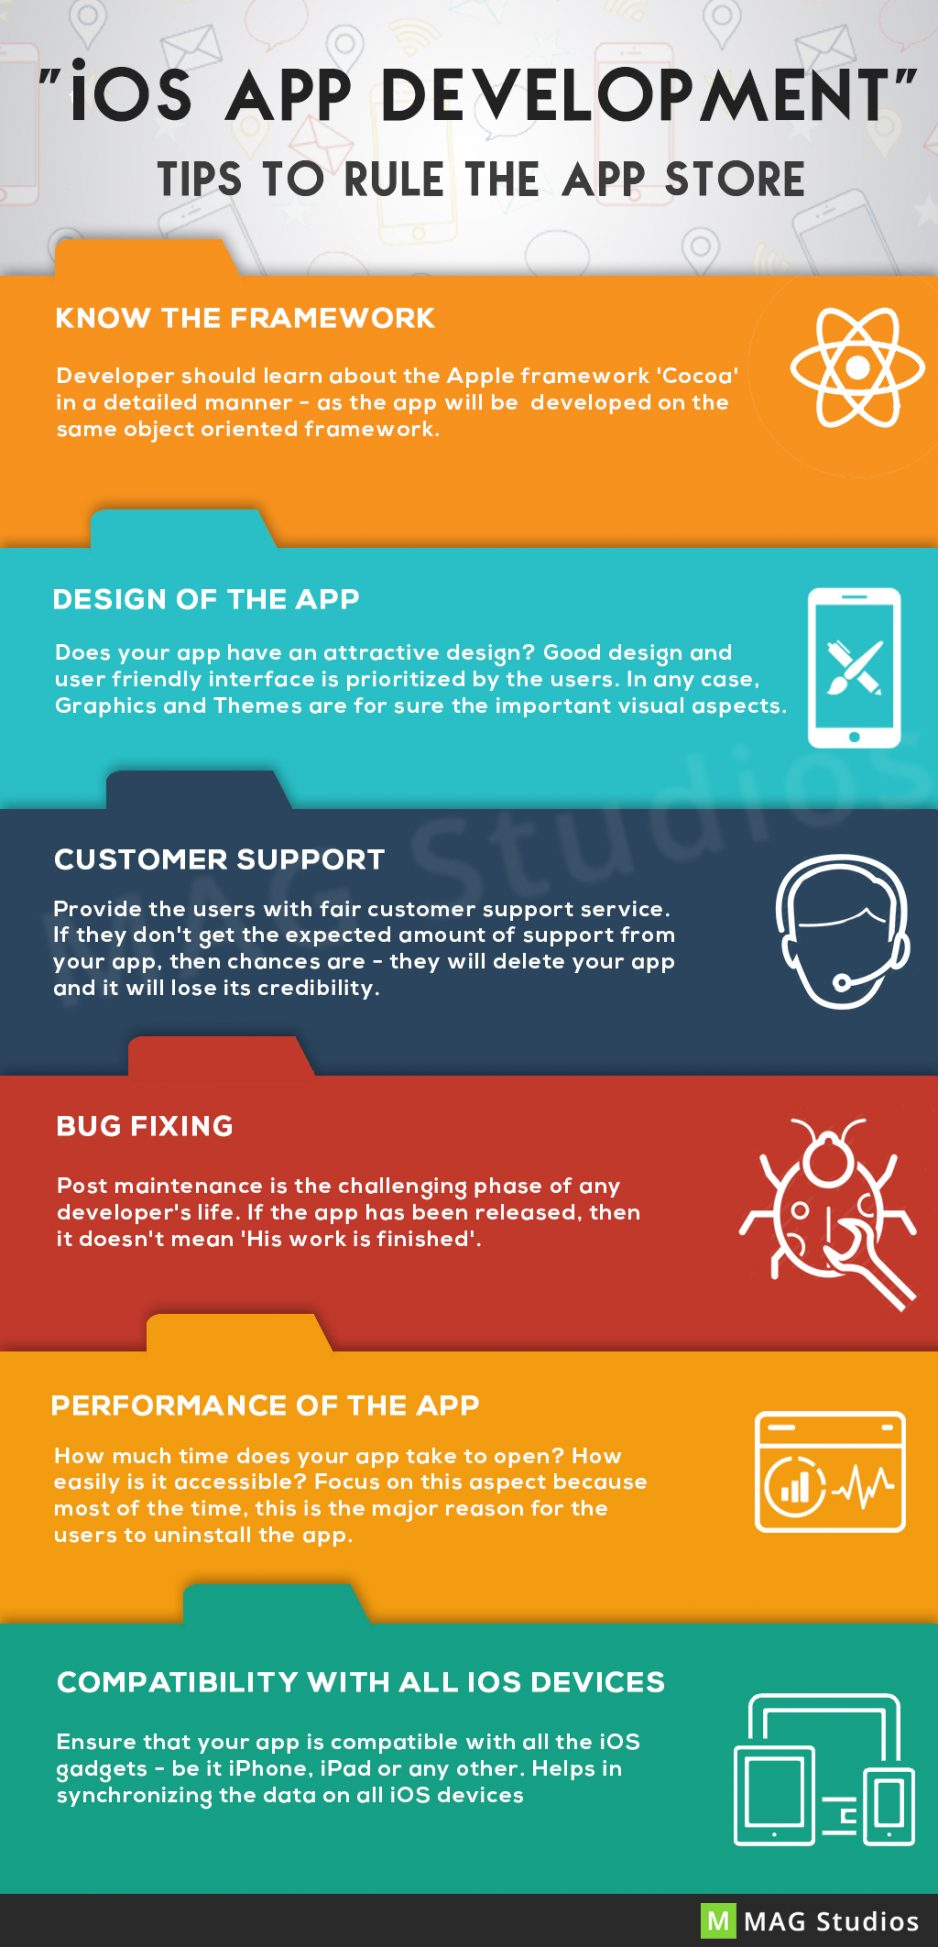 iOS App Development tips to rule the App Store